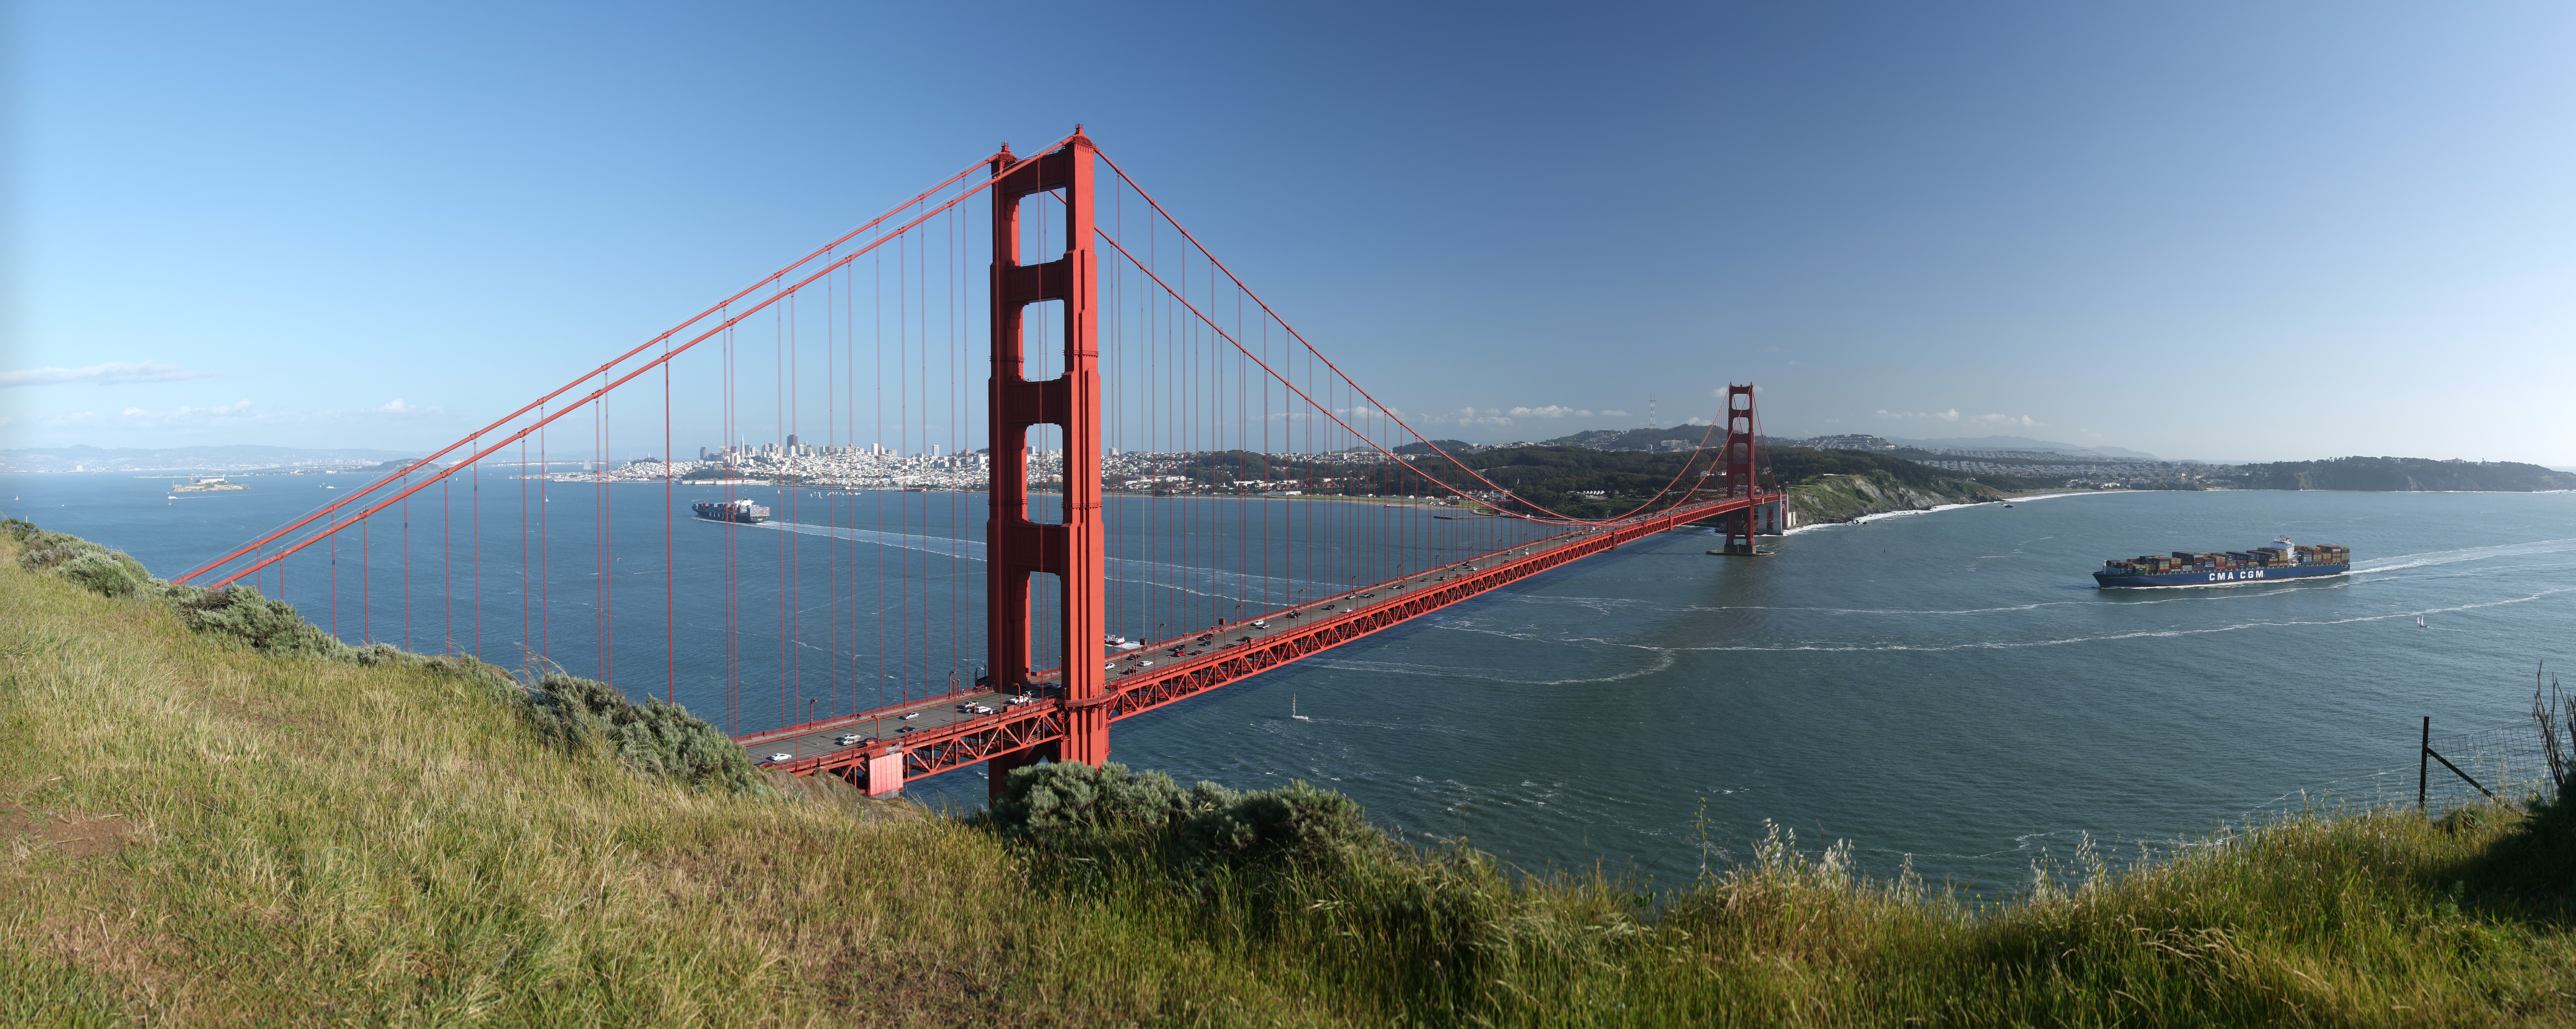 The Golden Gate in California, as seen from the Marin Headlands looking south.